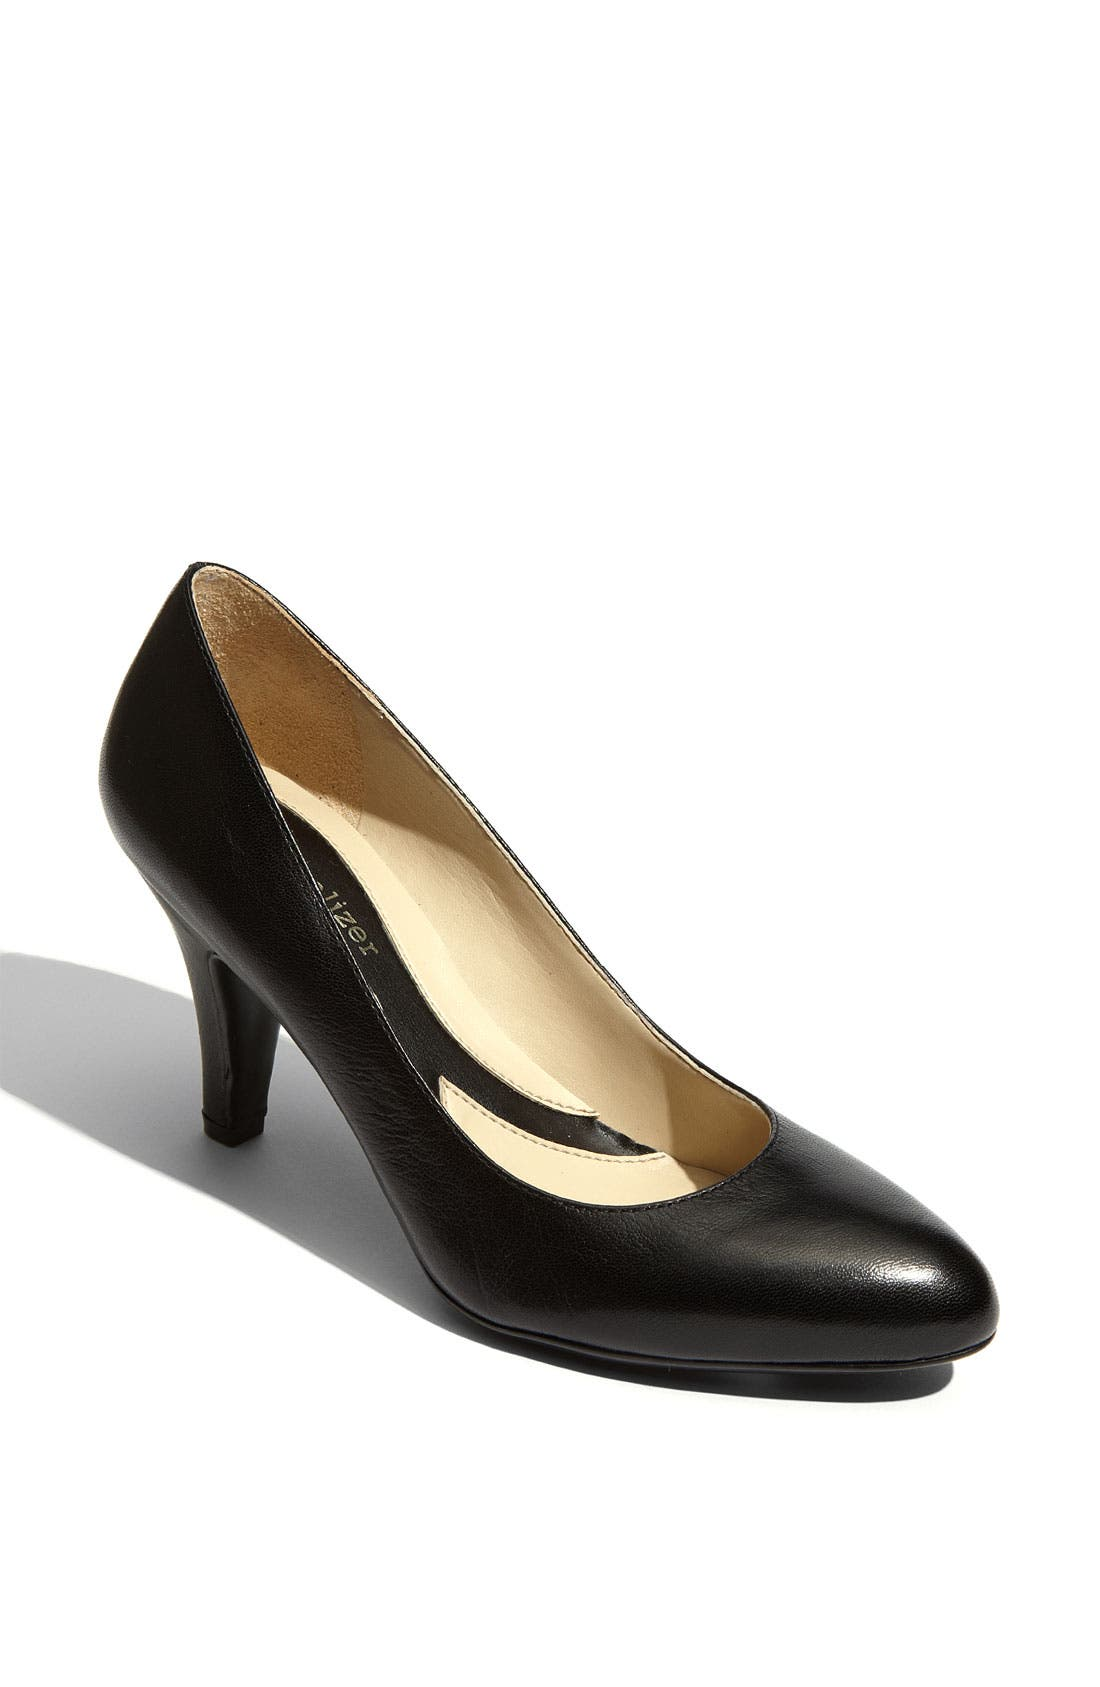 Alternate Image 1 Selected - Naturalizer 'Clava' Pump